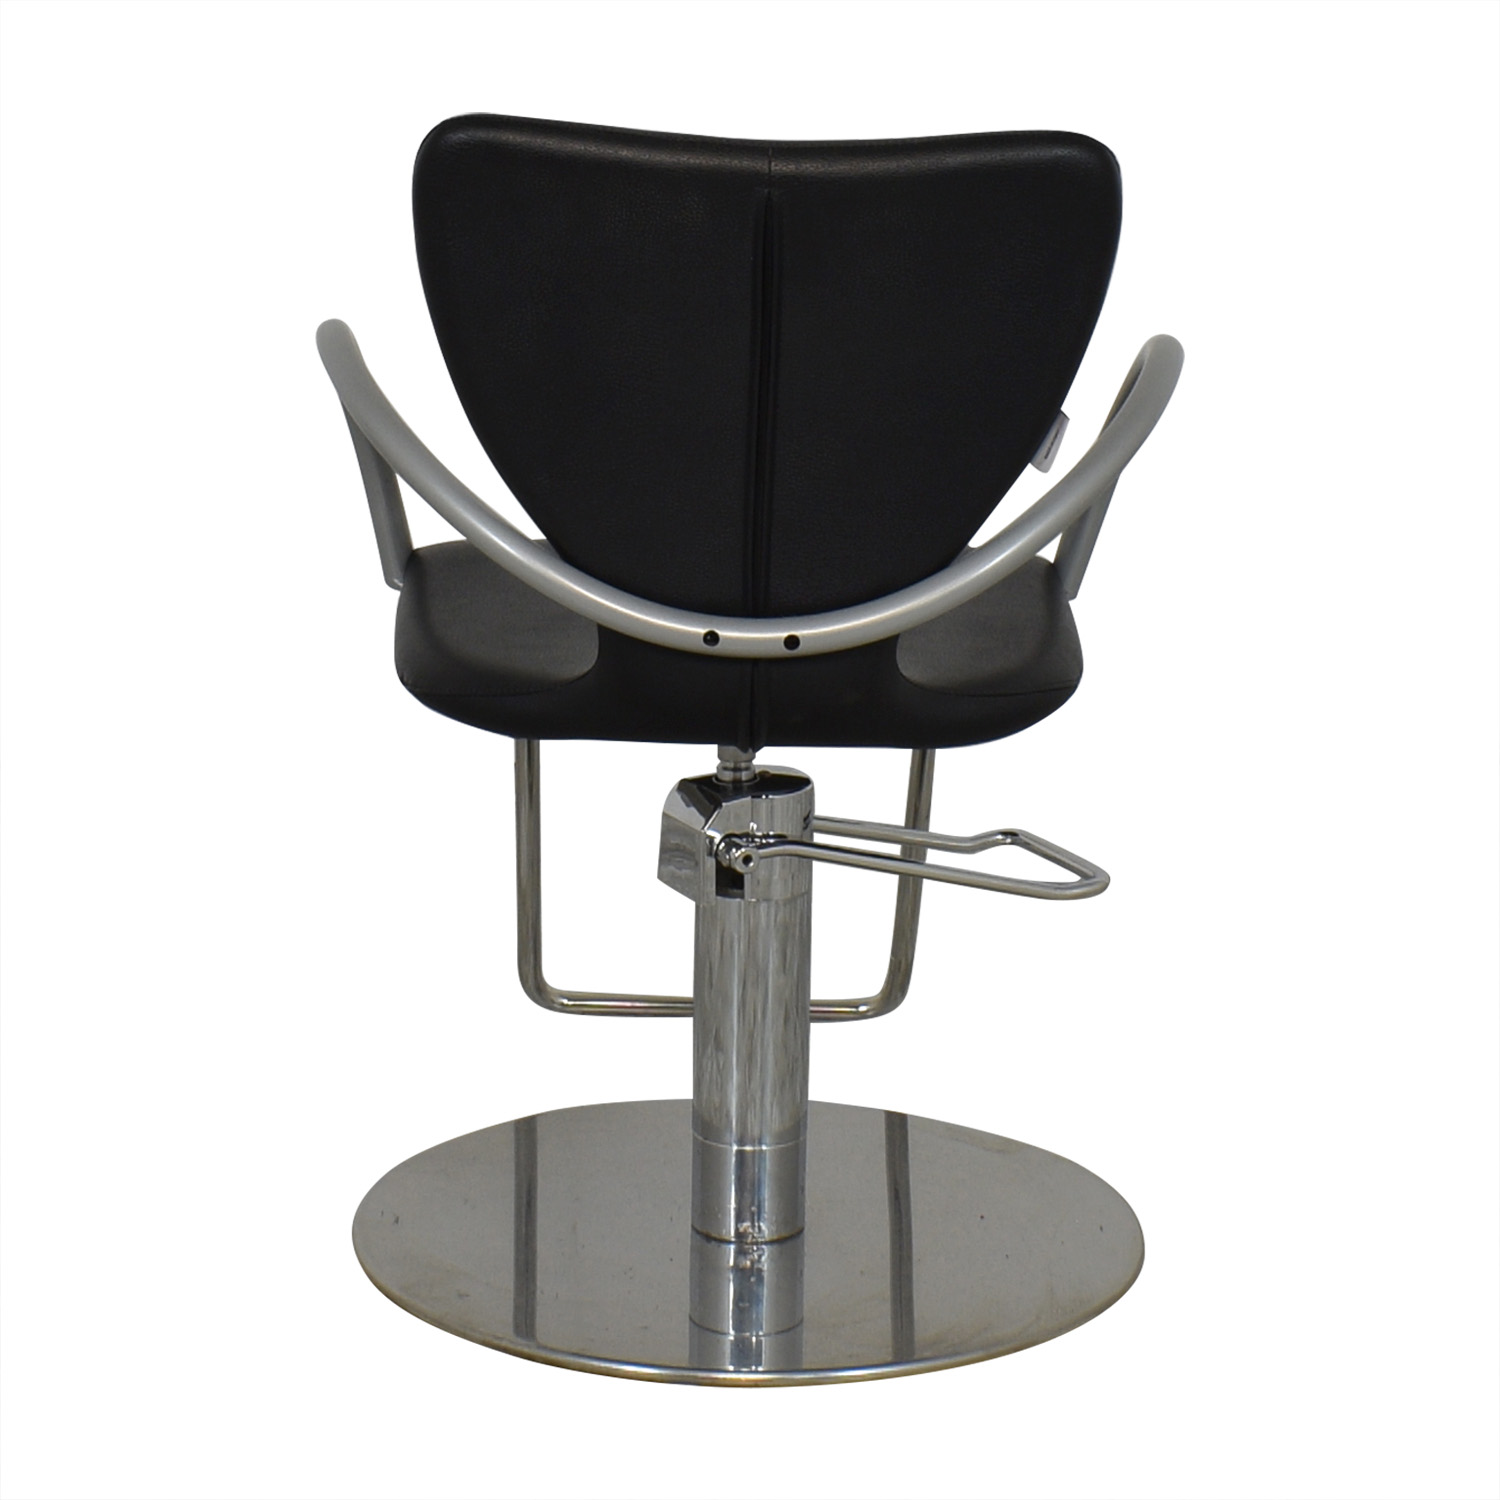 Gamma & Bross Gamma Bross Folda Parrot Styling Chair black